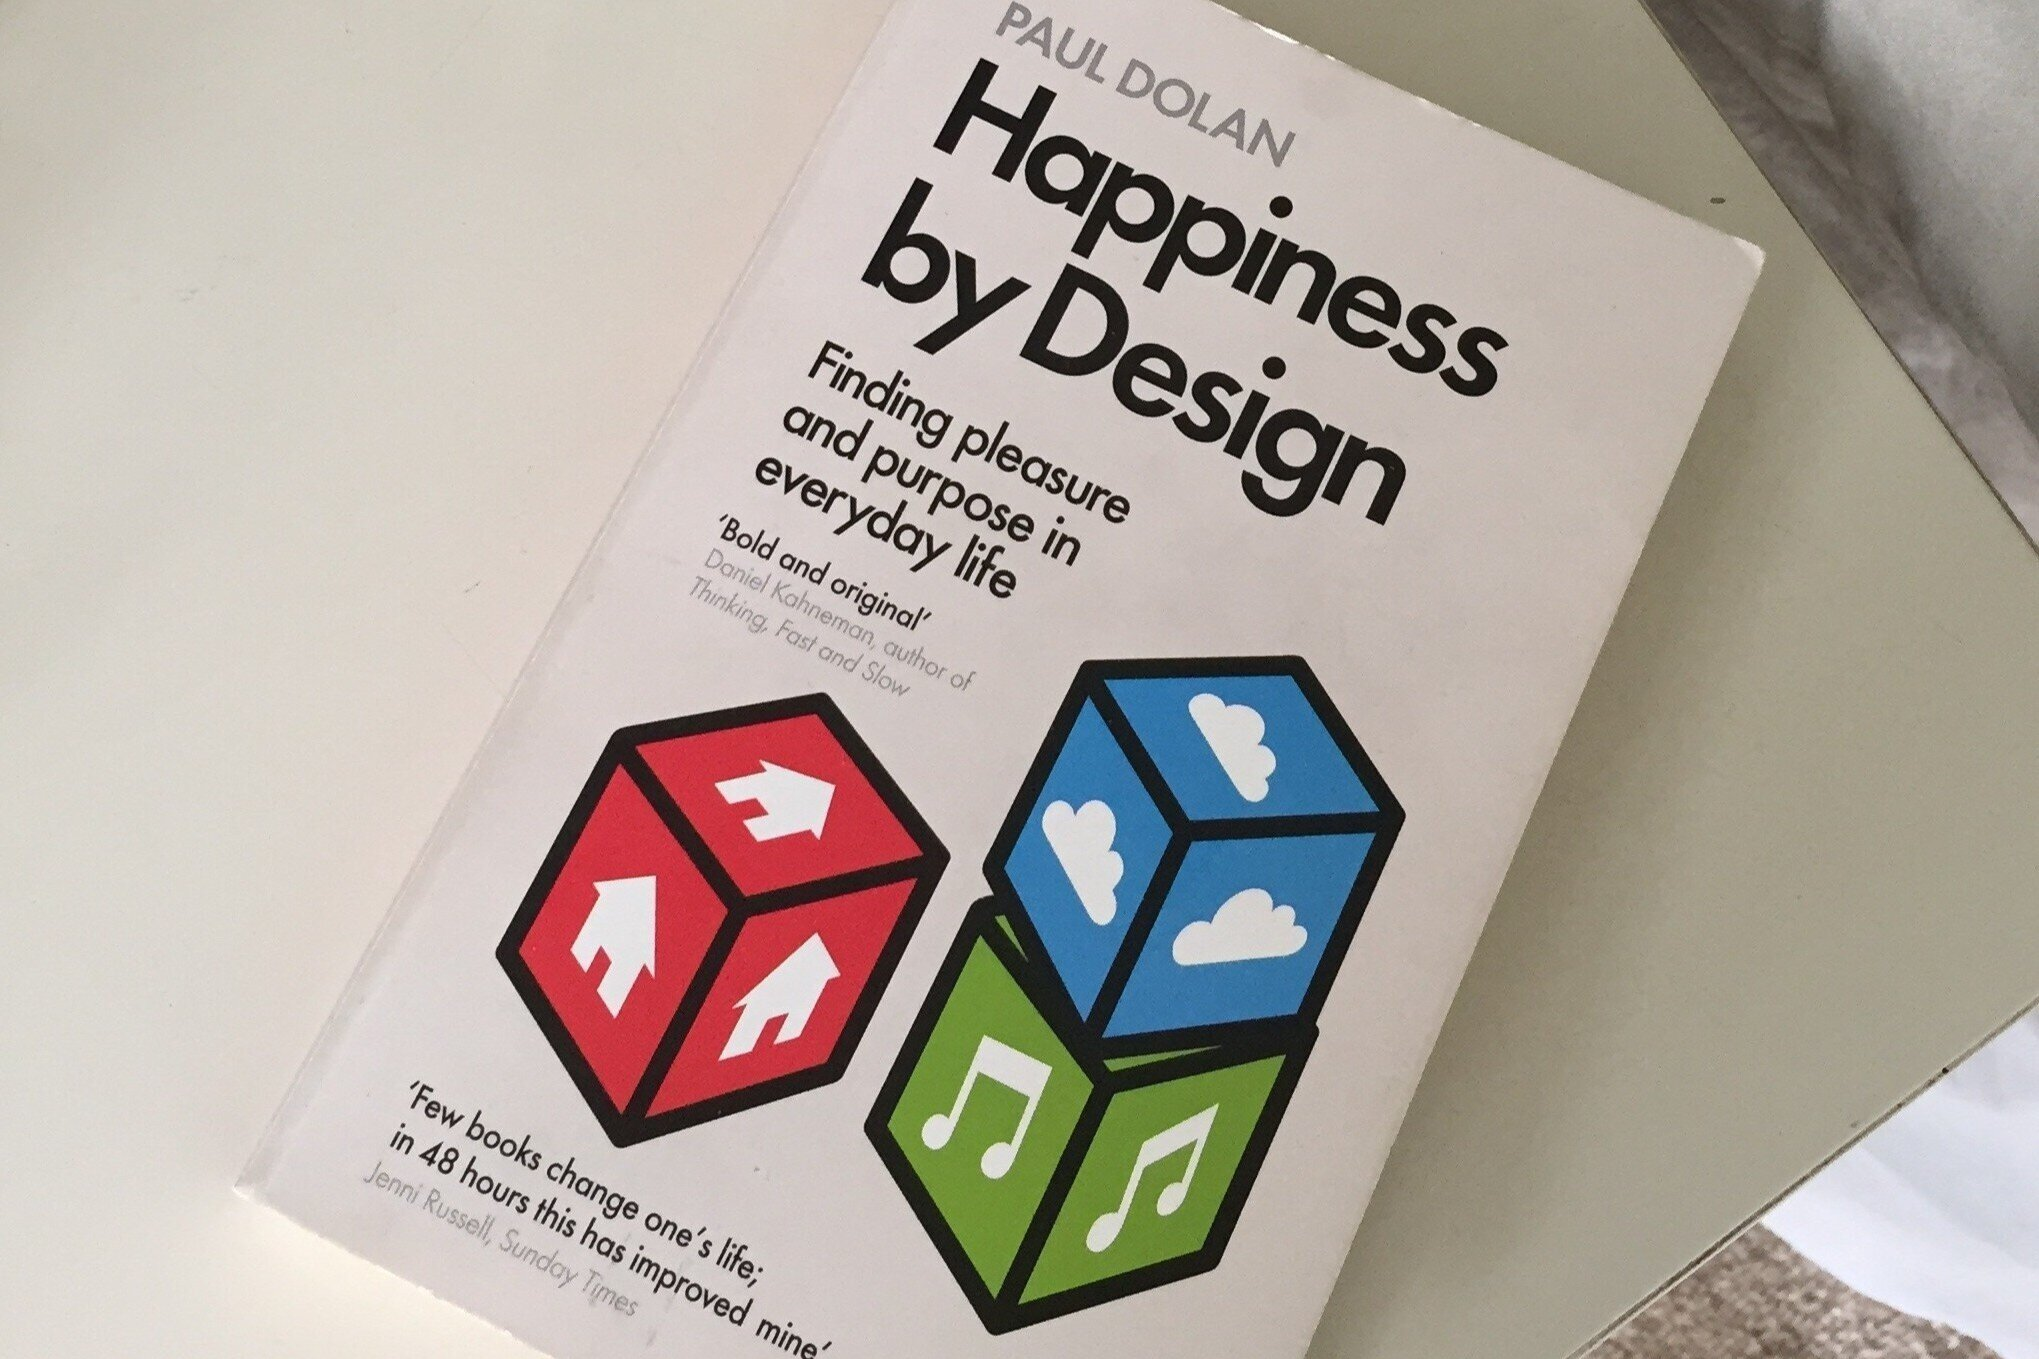 On Well-being - Happiness by Design by Paul Dolan (or Overwhelmed by Brigid Schulte).